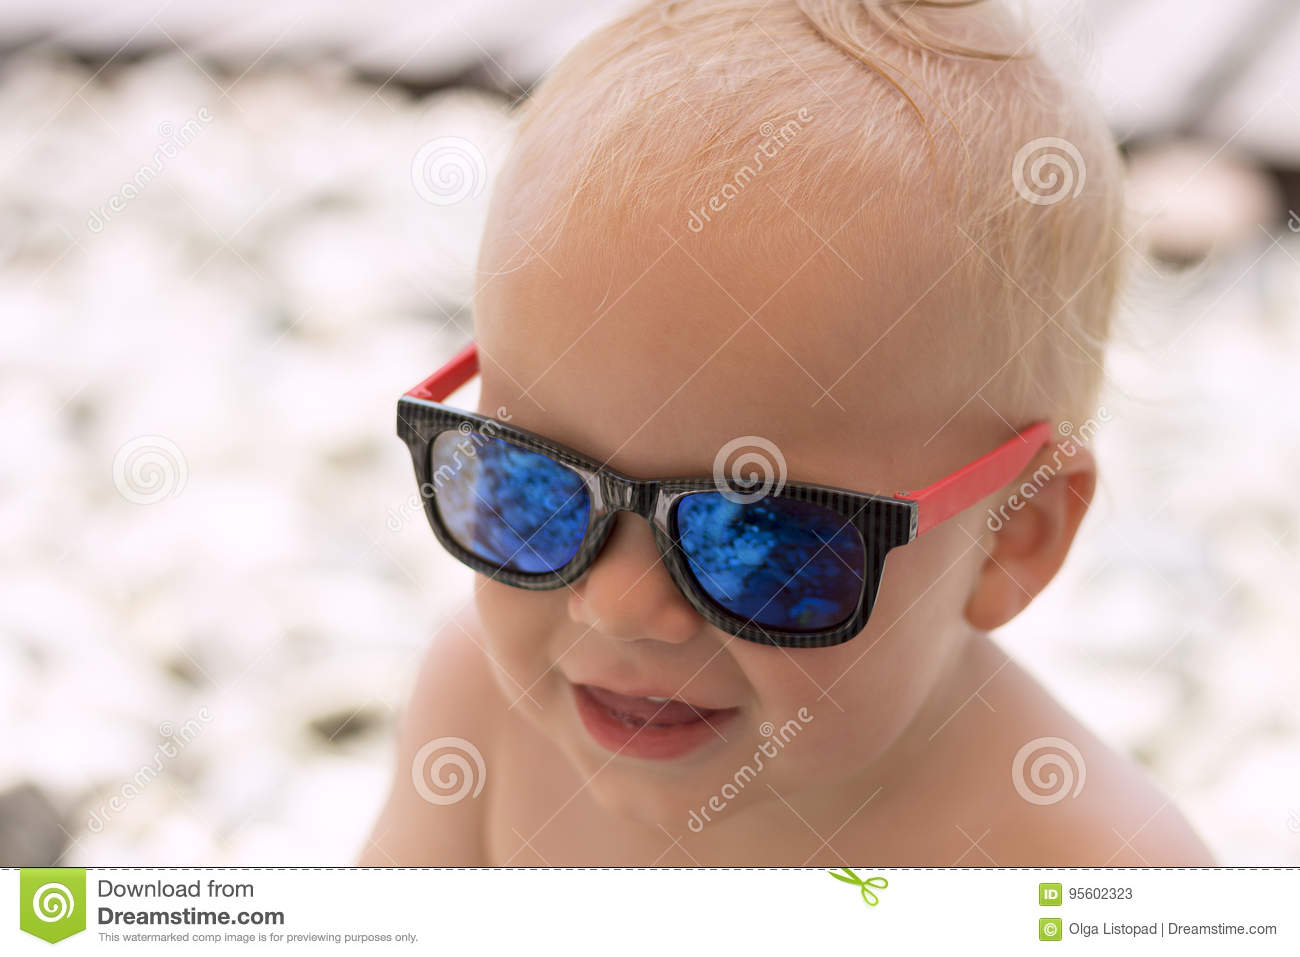 1fcf34e82e5e6 Funny smiling baby boy in sunglasses on the beach. Stones are reflected in  the glasses. Little boss on vacation.